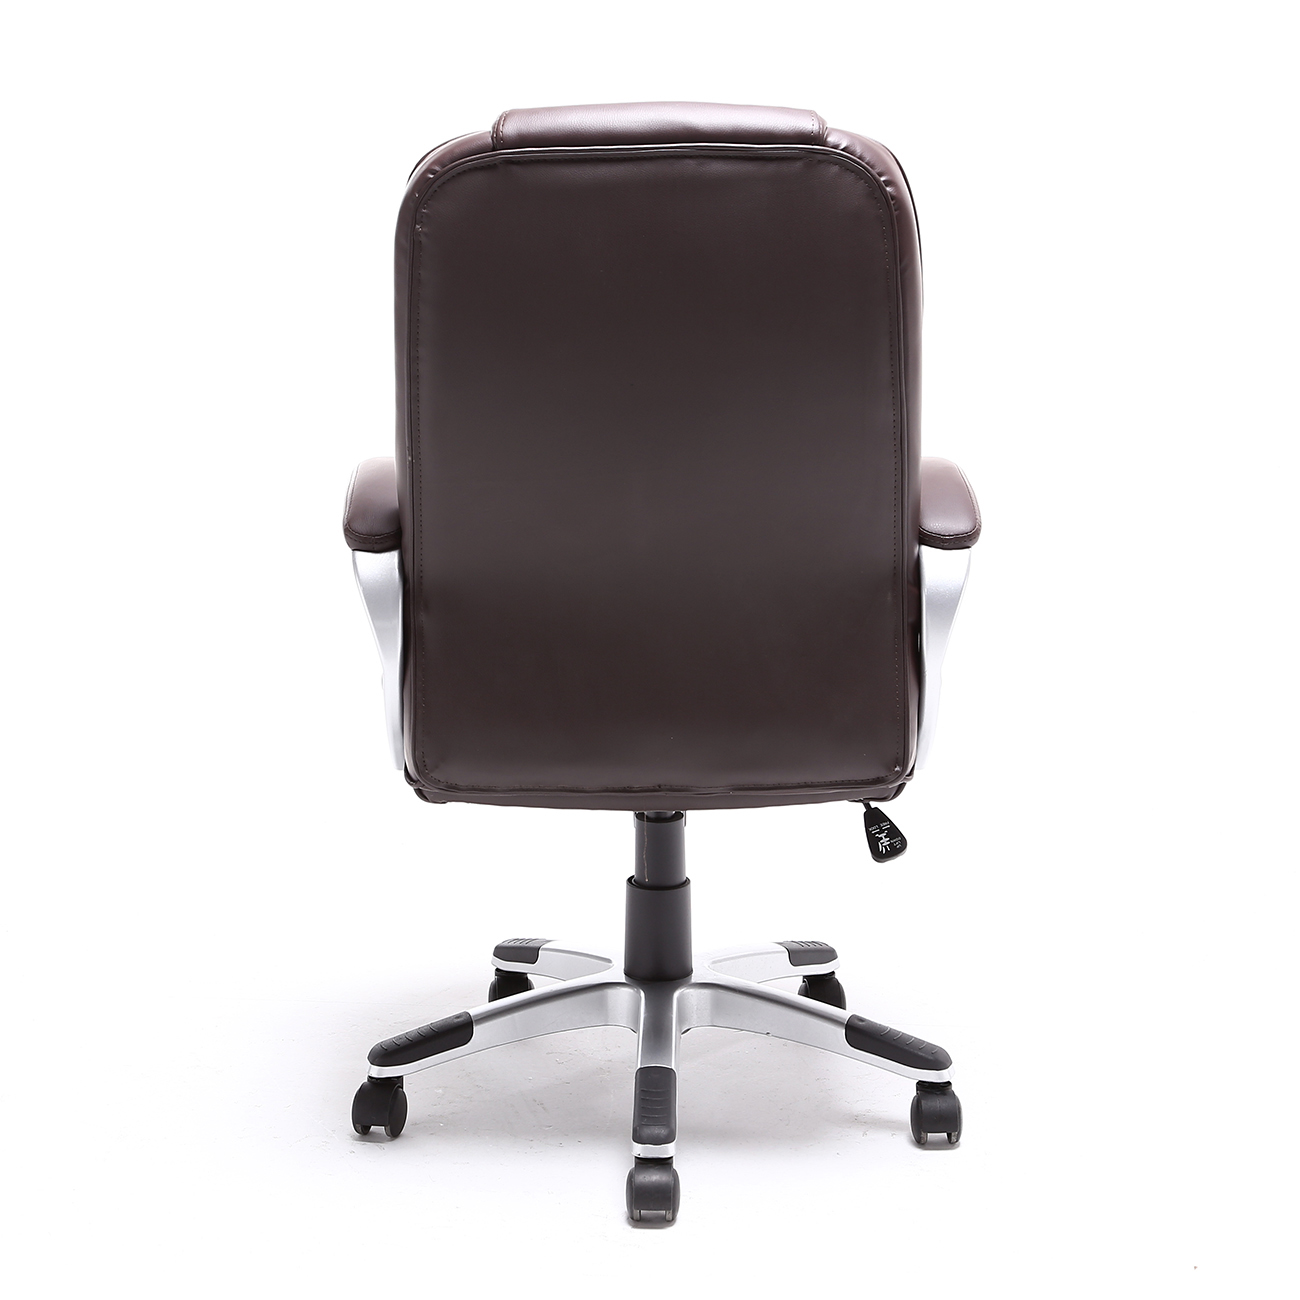 Best Computer Chair For Back High Back Pu Leather Executive Ergonomic Office Chair Desk